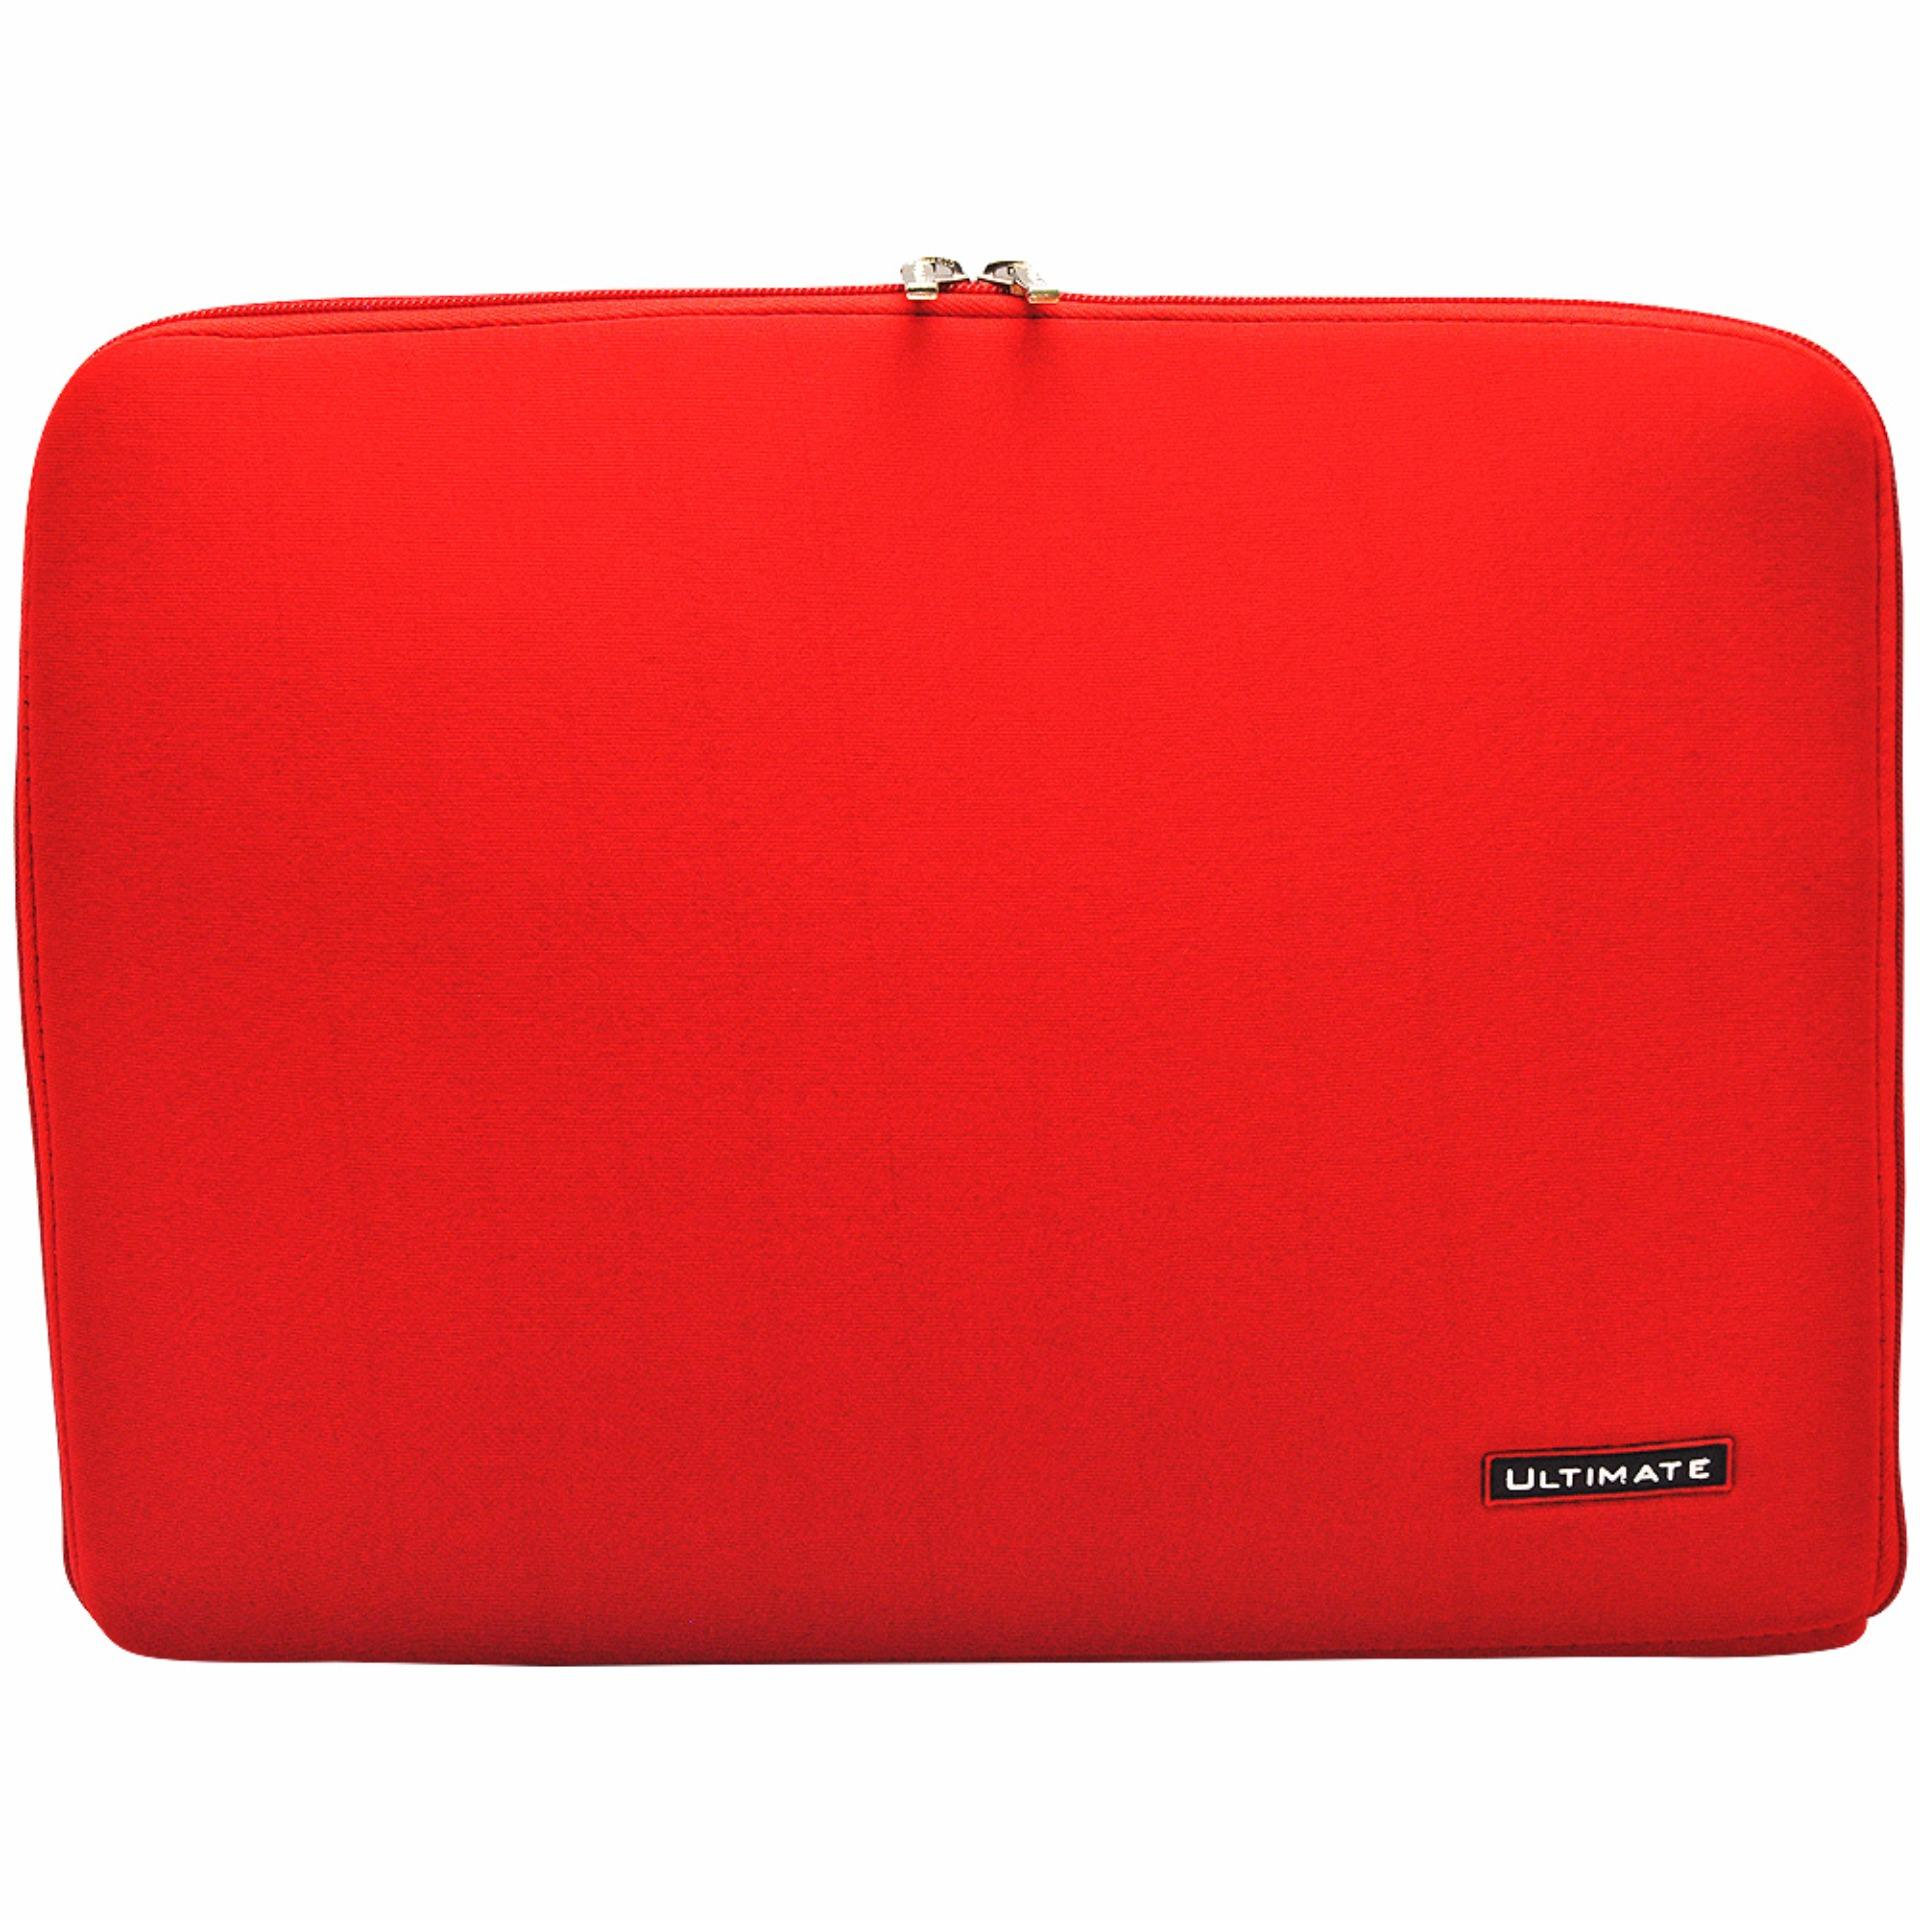 Ultimate Classic 116 Inch Red Tas Laptop Case Softcase Sleeve Bag Notebook 15 Black Source